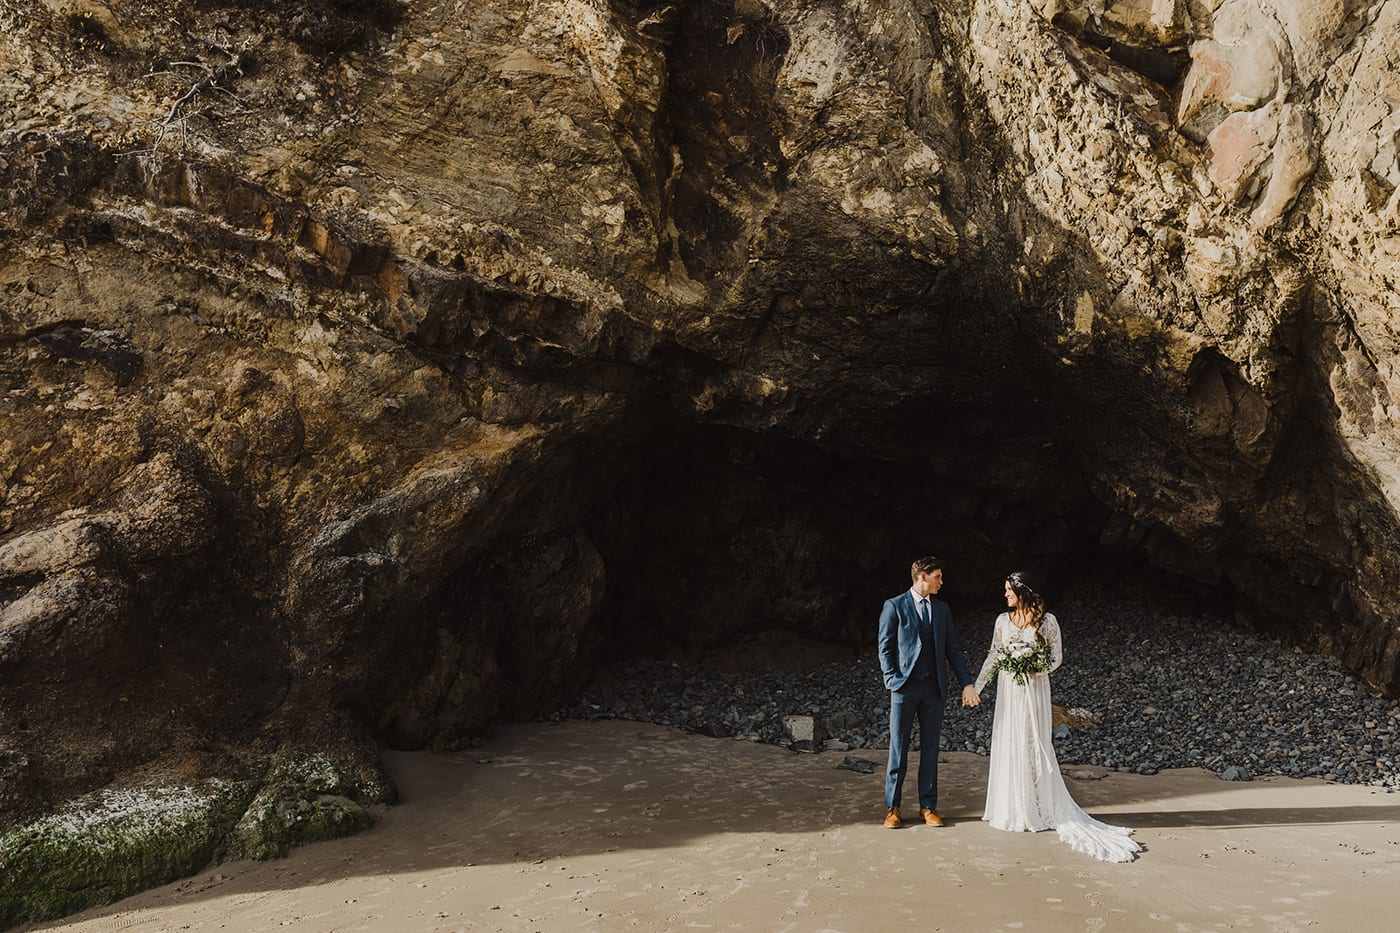 large rock formation with cave and couple standing in front holding hands before elopement